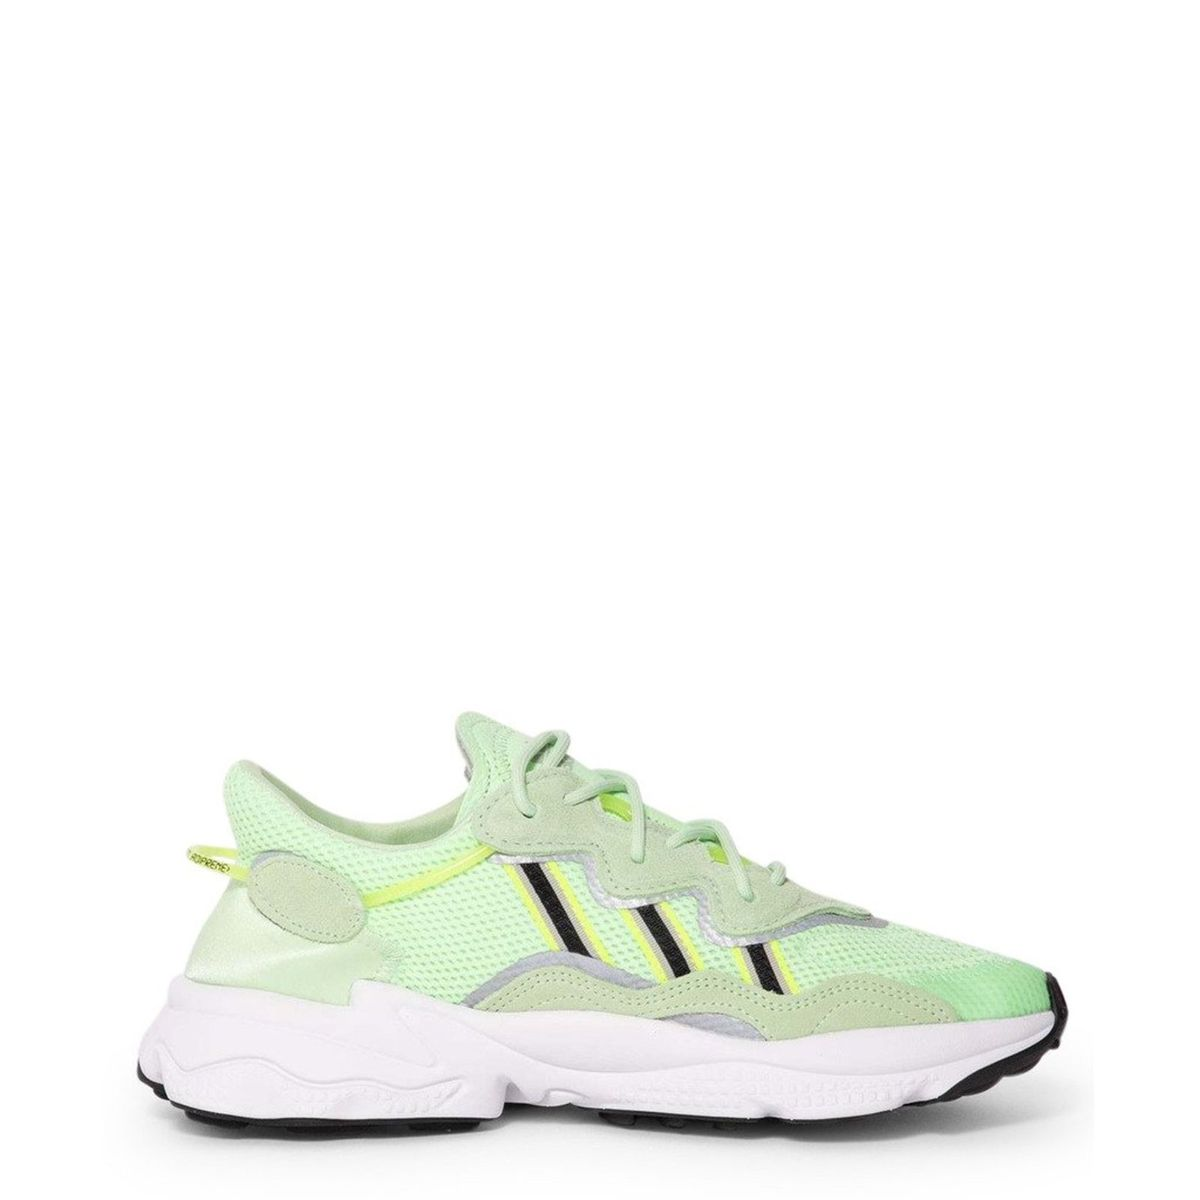 Top designer brands Men Fashion Sneakers and Shoes